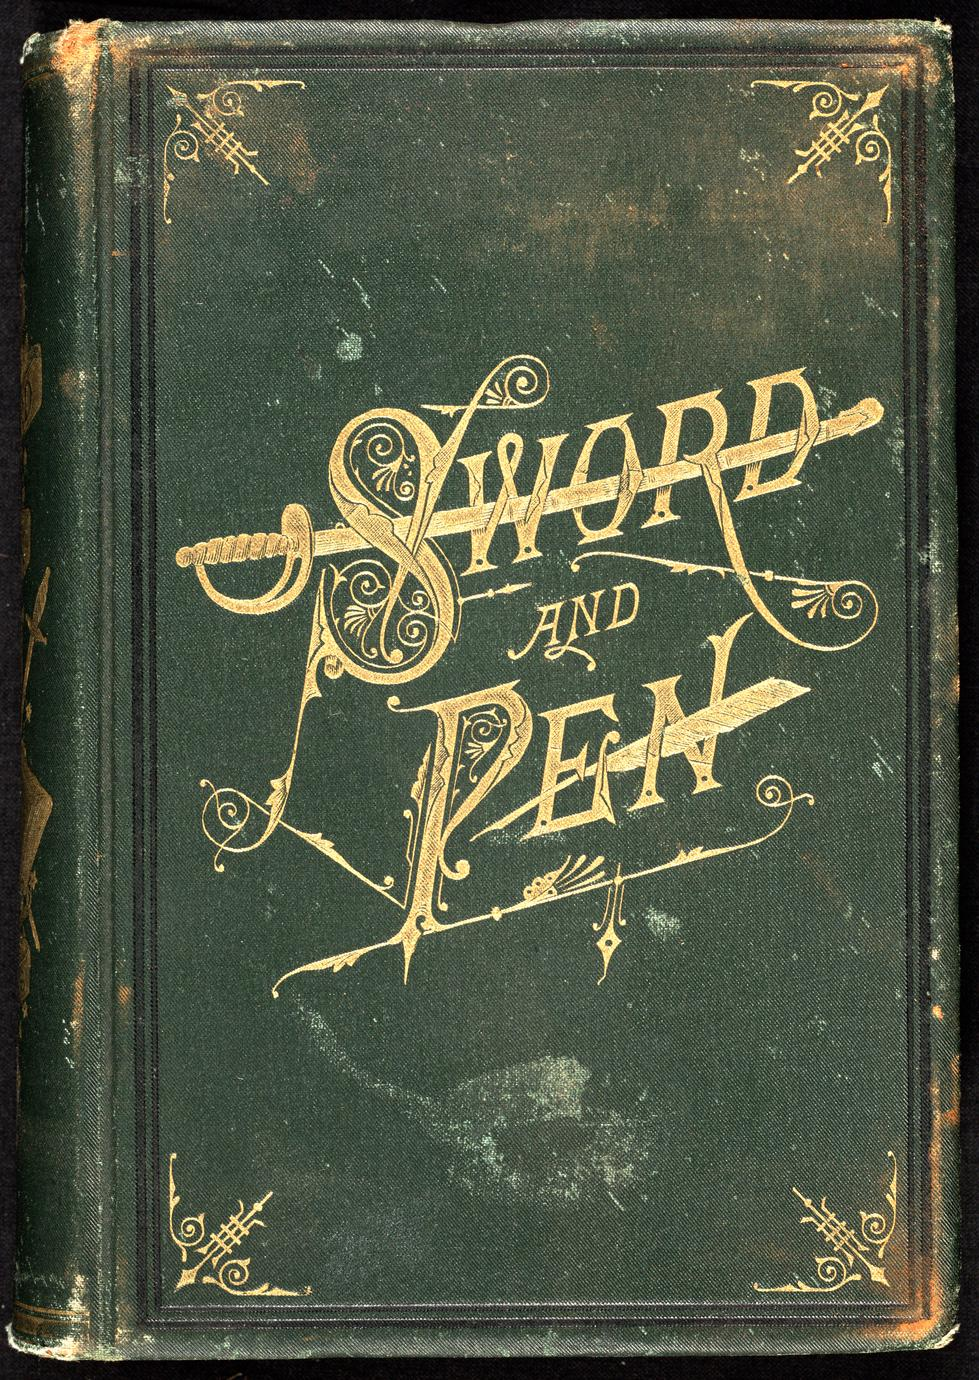 Sword and pen ; or, Ventures and adventures of Willard Glazier, in war and literature : comprising incidents and reminiscences of his childhood, his chequered life as a student and teacher, and his remarkable career as a soldier and author : embracing also the story of his unprecedented journey from ocean to ocean on horseback (1 of 2)